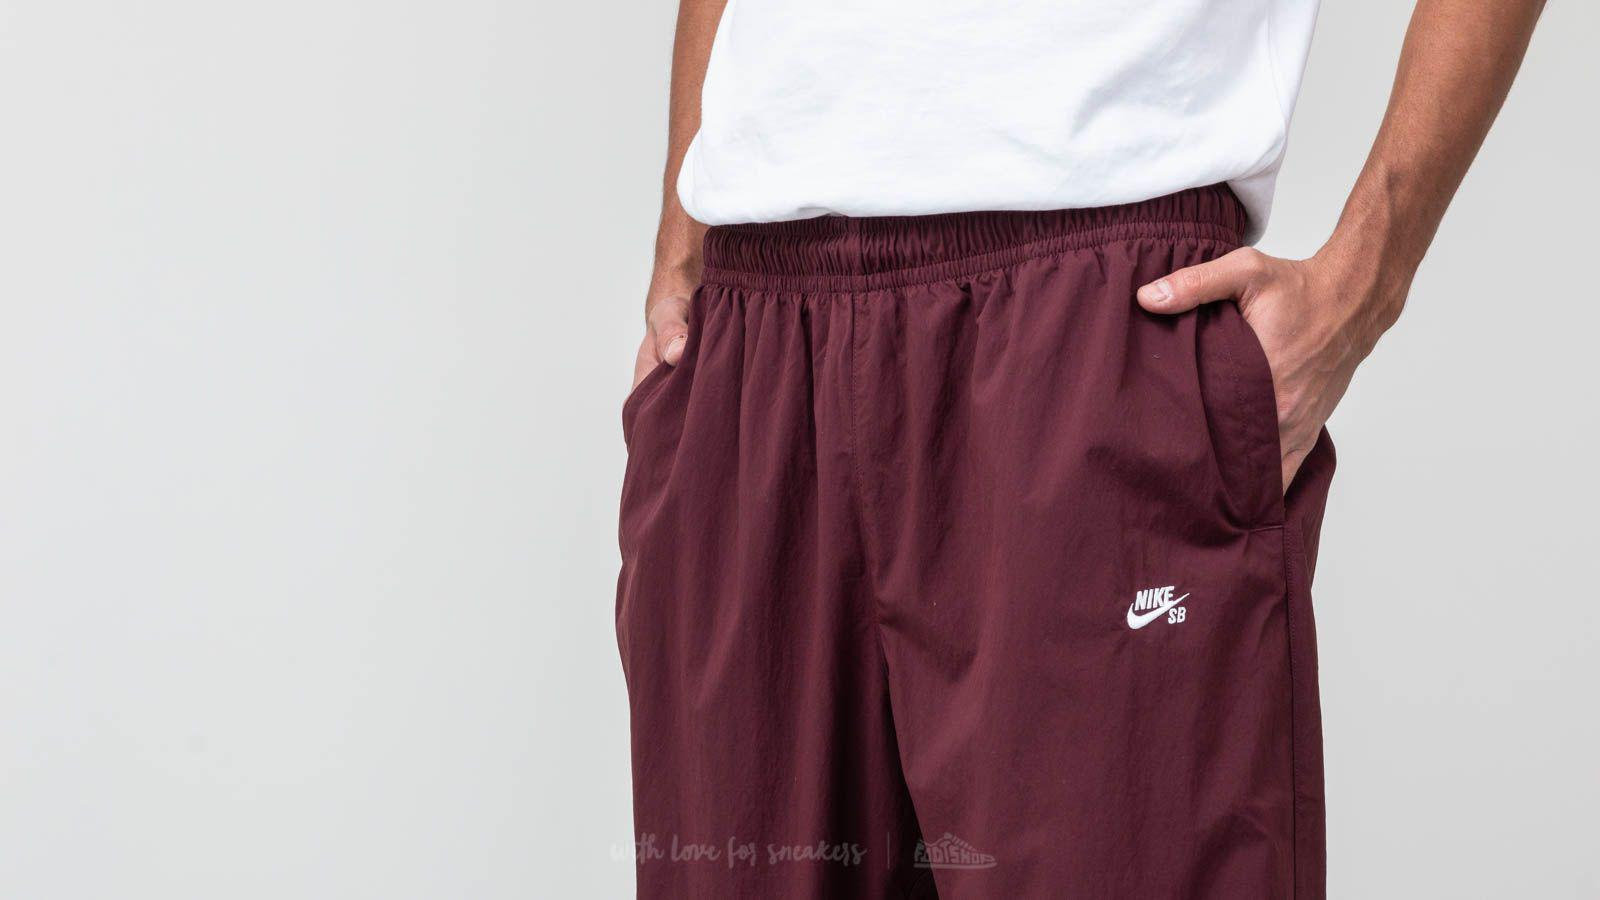 4bfa8d2a84c5 Lyst - Nike Sb Flex Track Pants Bordeaux  White for Men